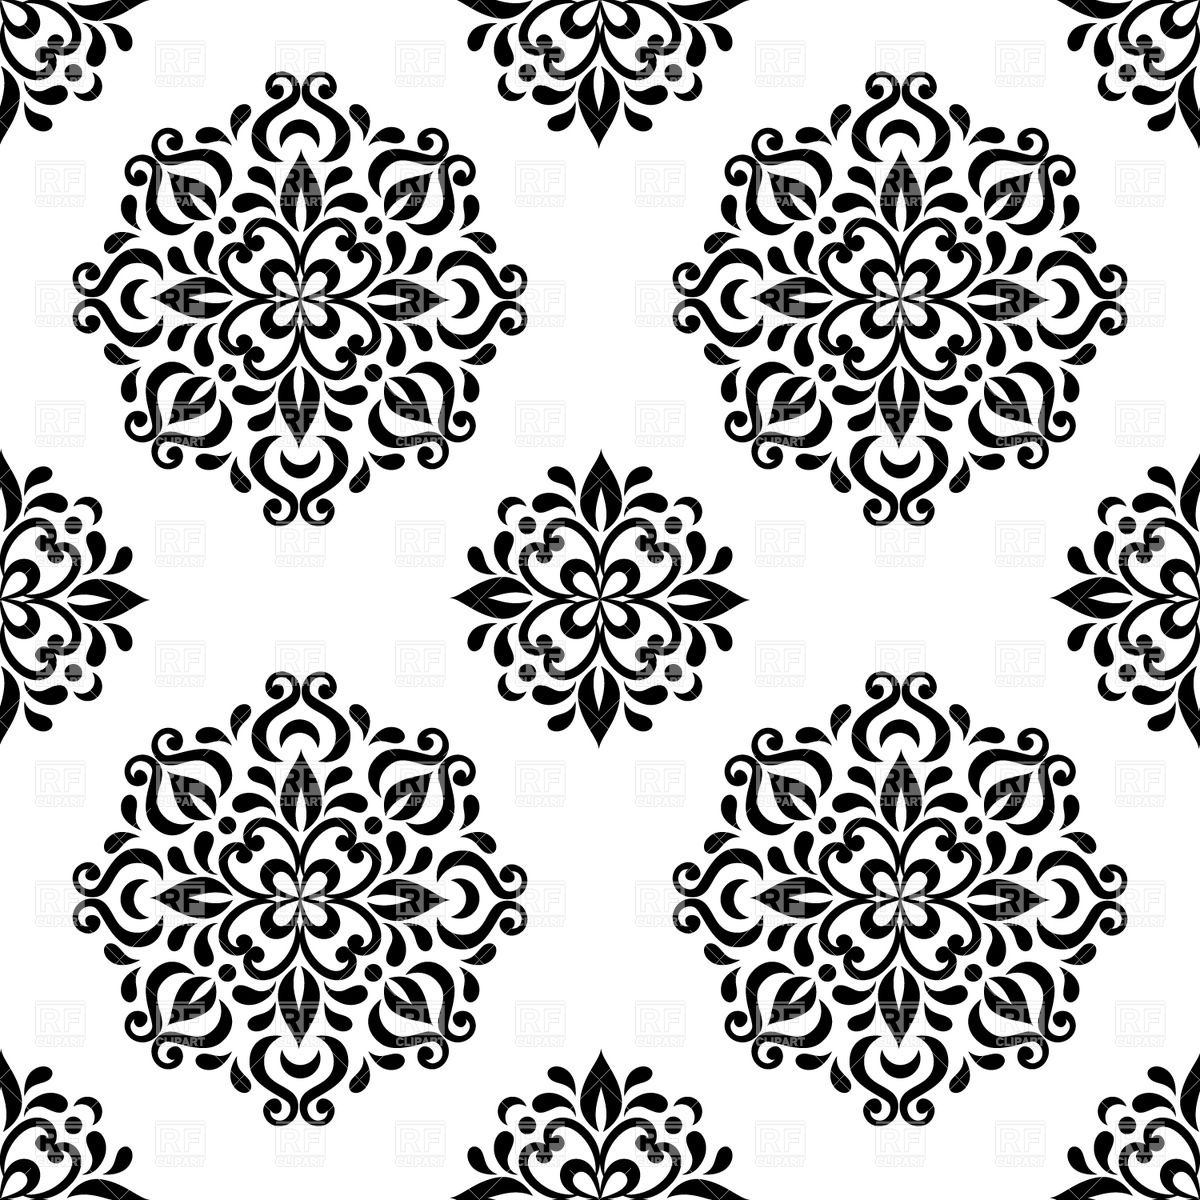 Black and white seamless floral wallpaper.